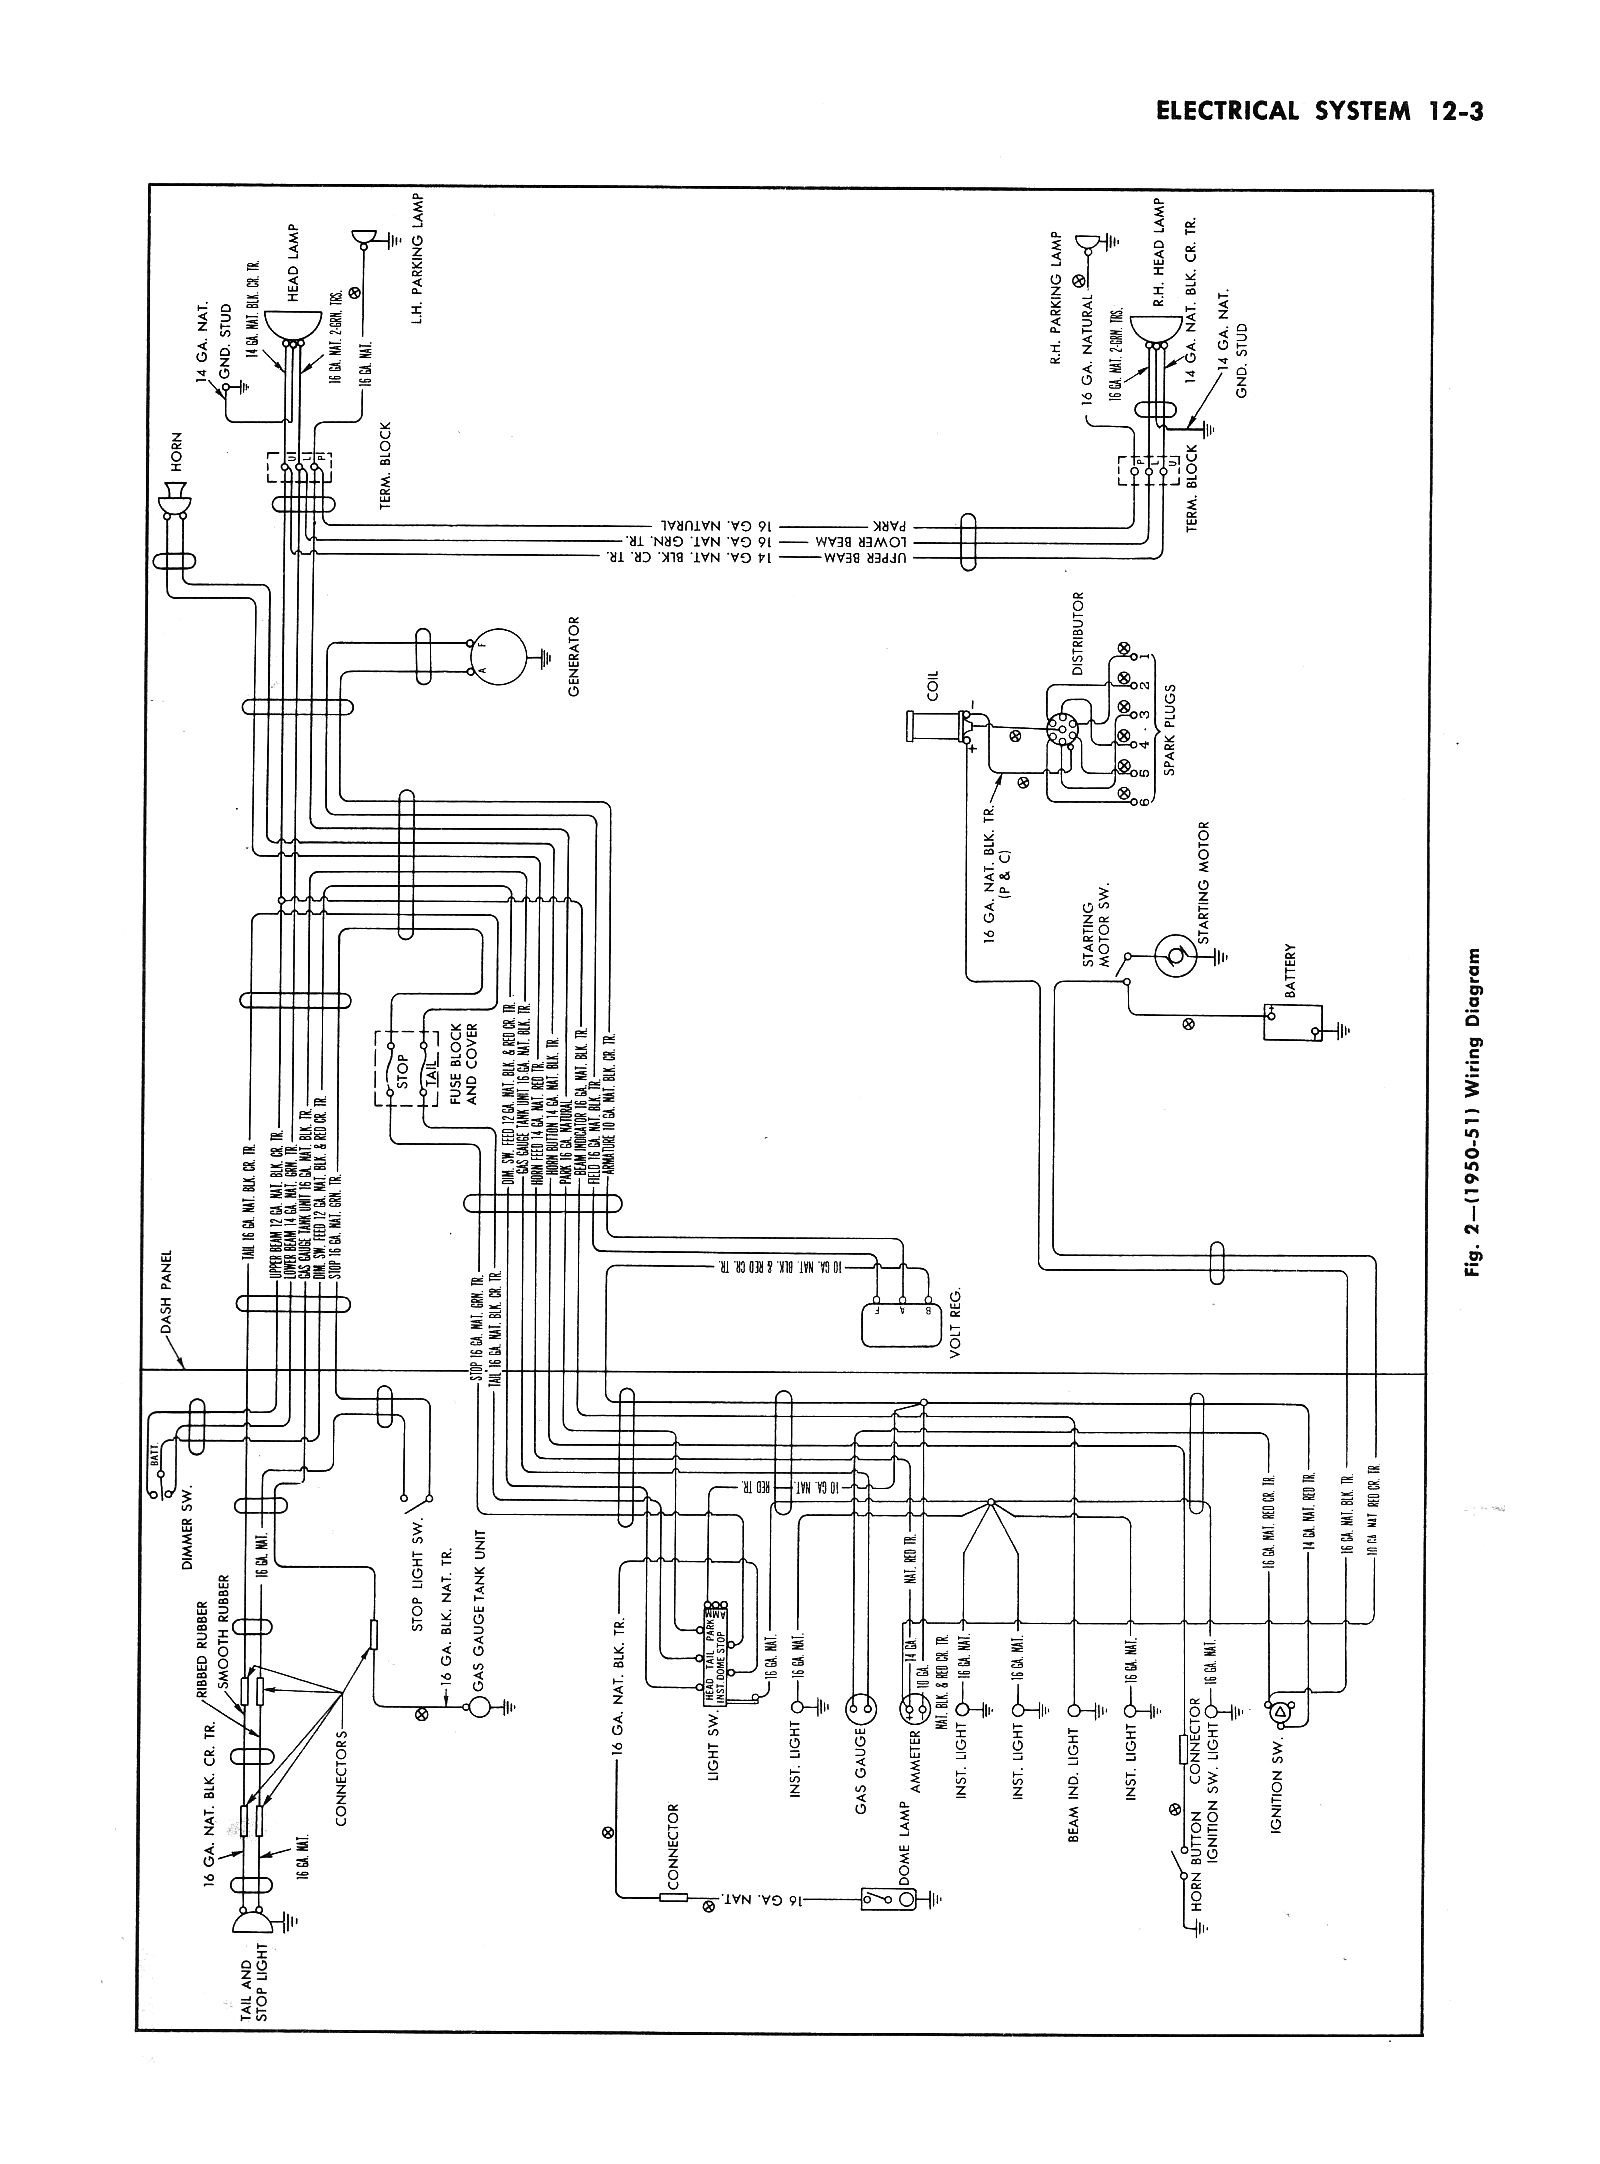 Ignition Switch Wiring Diagram Chevy besides 1980 Jeep Cj7 Vacuum Diagram further 1957 Chevy Electrical Wiring Diagrams together with Massey Ferguson 135 Wiring Diagram Alternator moreover Wiring. on 1956 ford car wiring diagram